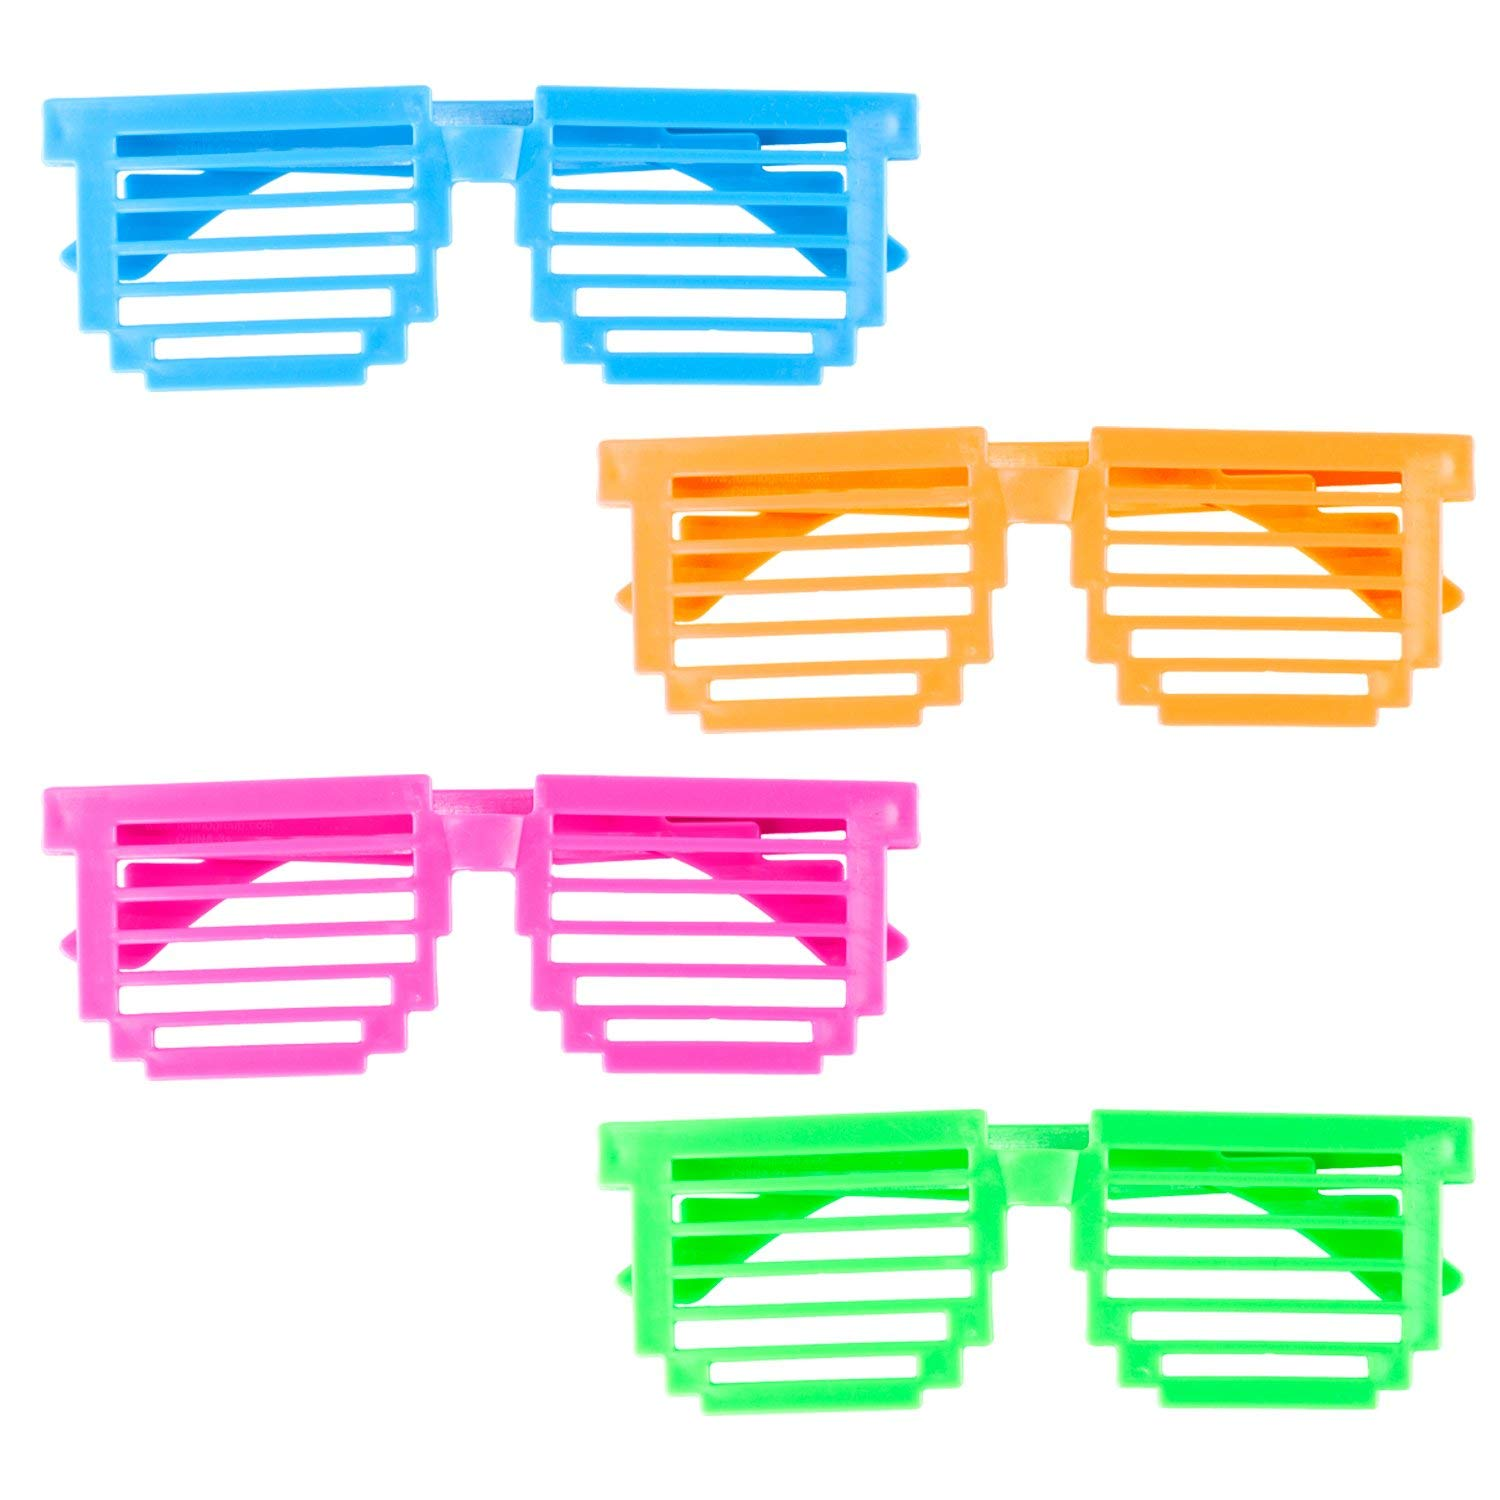 981f3744784 Get Quotations · Plastic Color Assorted Square Shutter 80s Disco Retro  Style Children Unisex Glasses Shades Eye Wear for